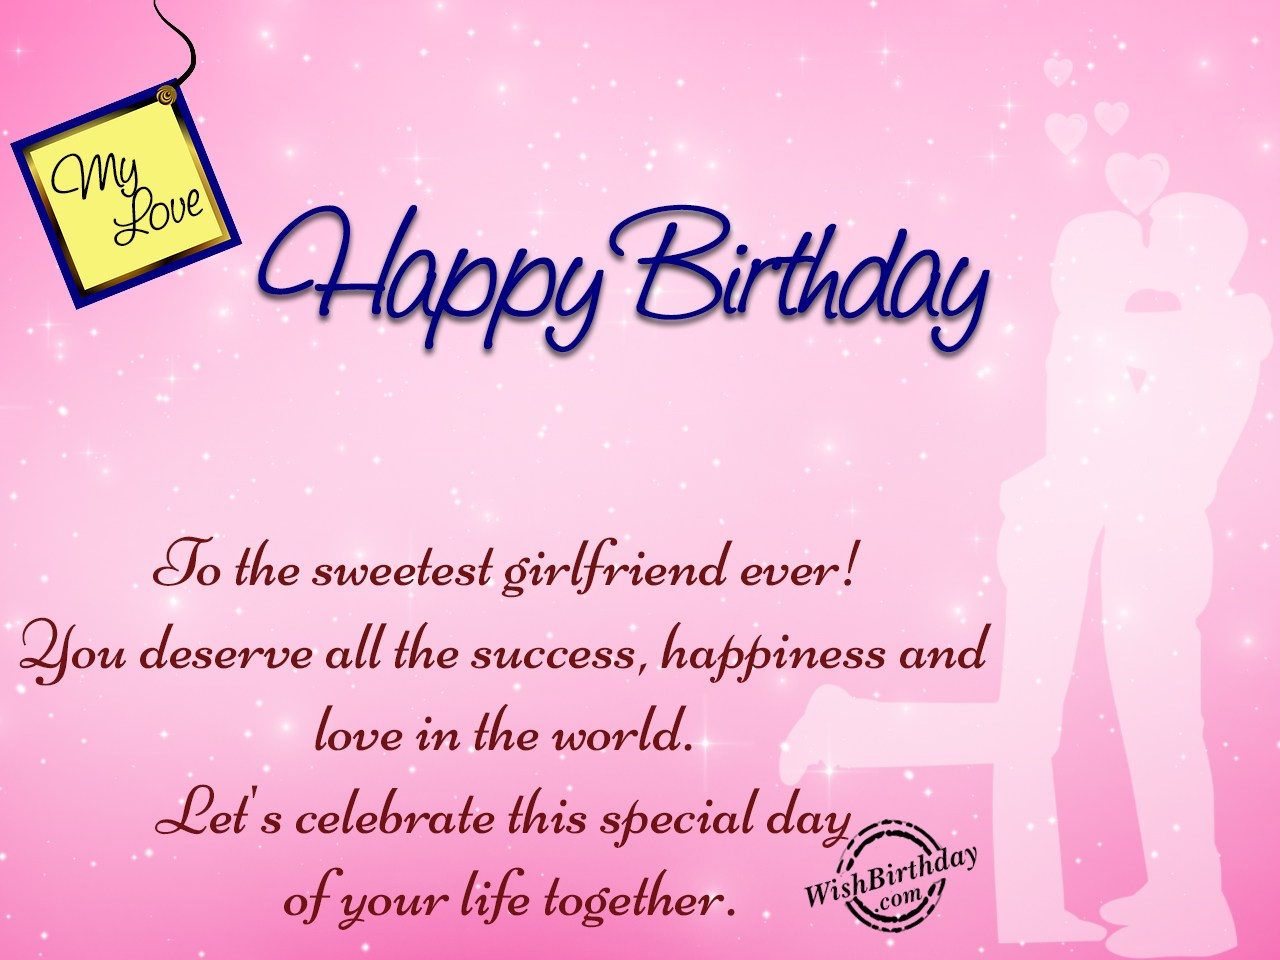 Happy birthday messages to my girlfriend